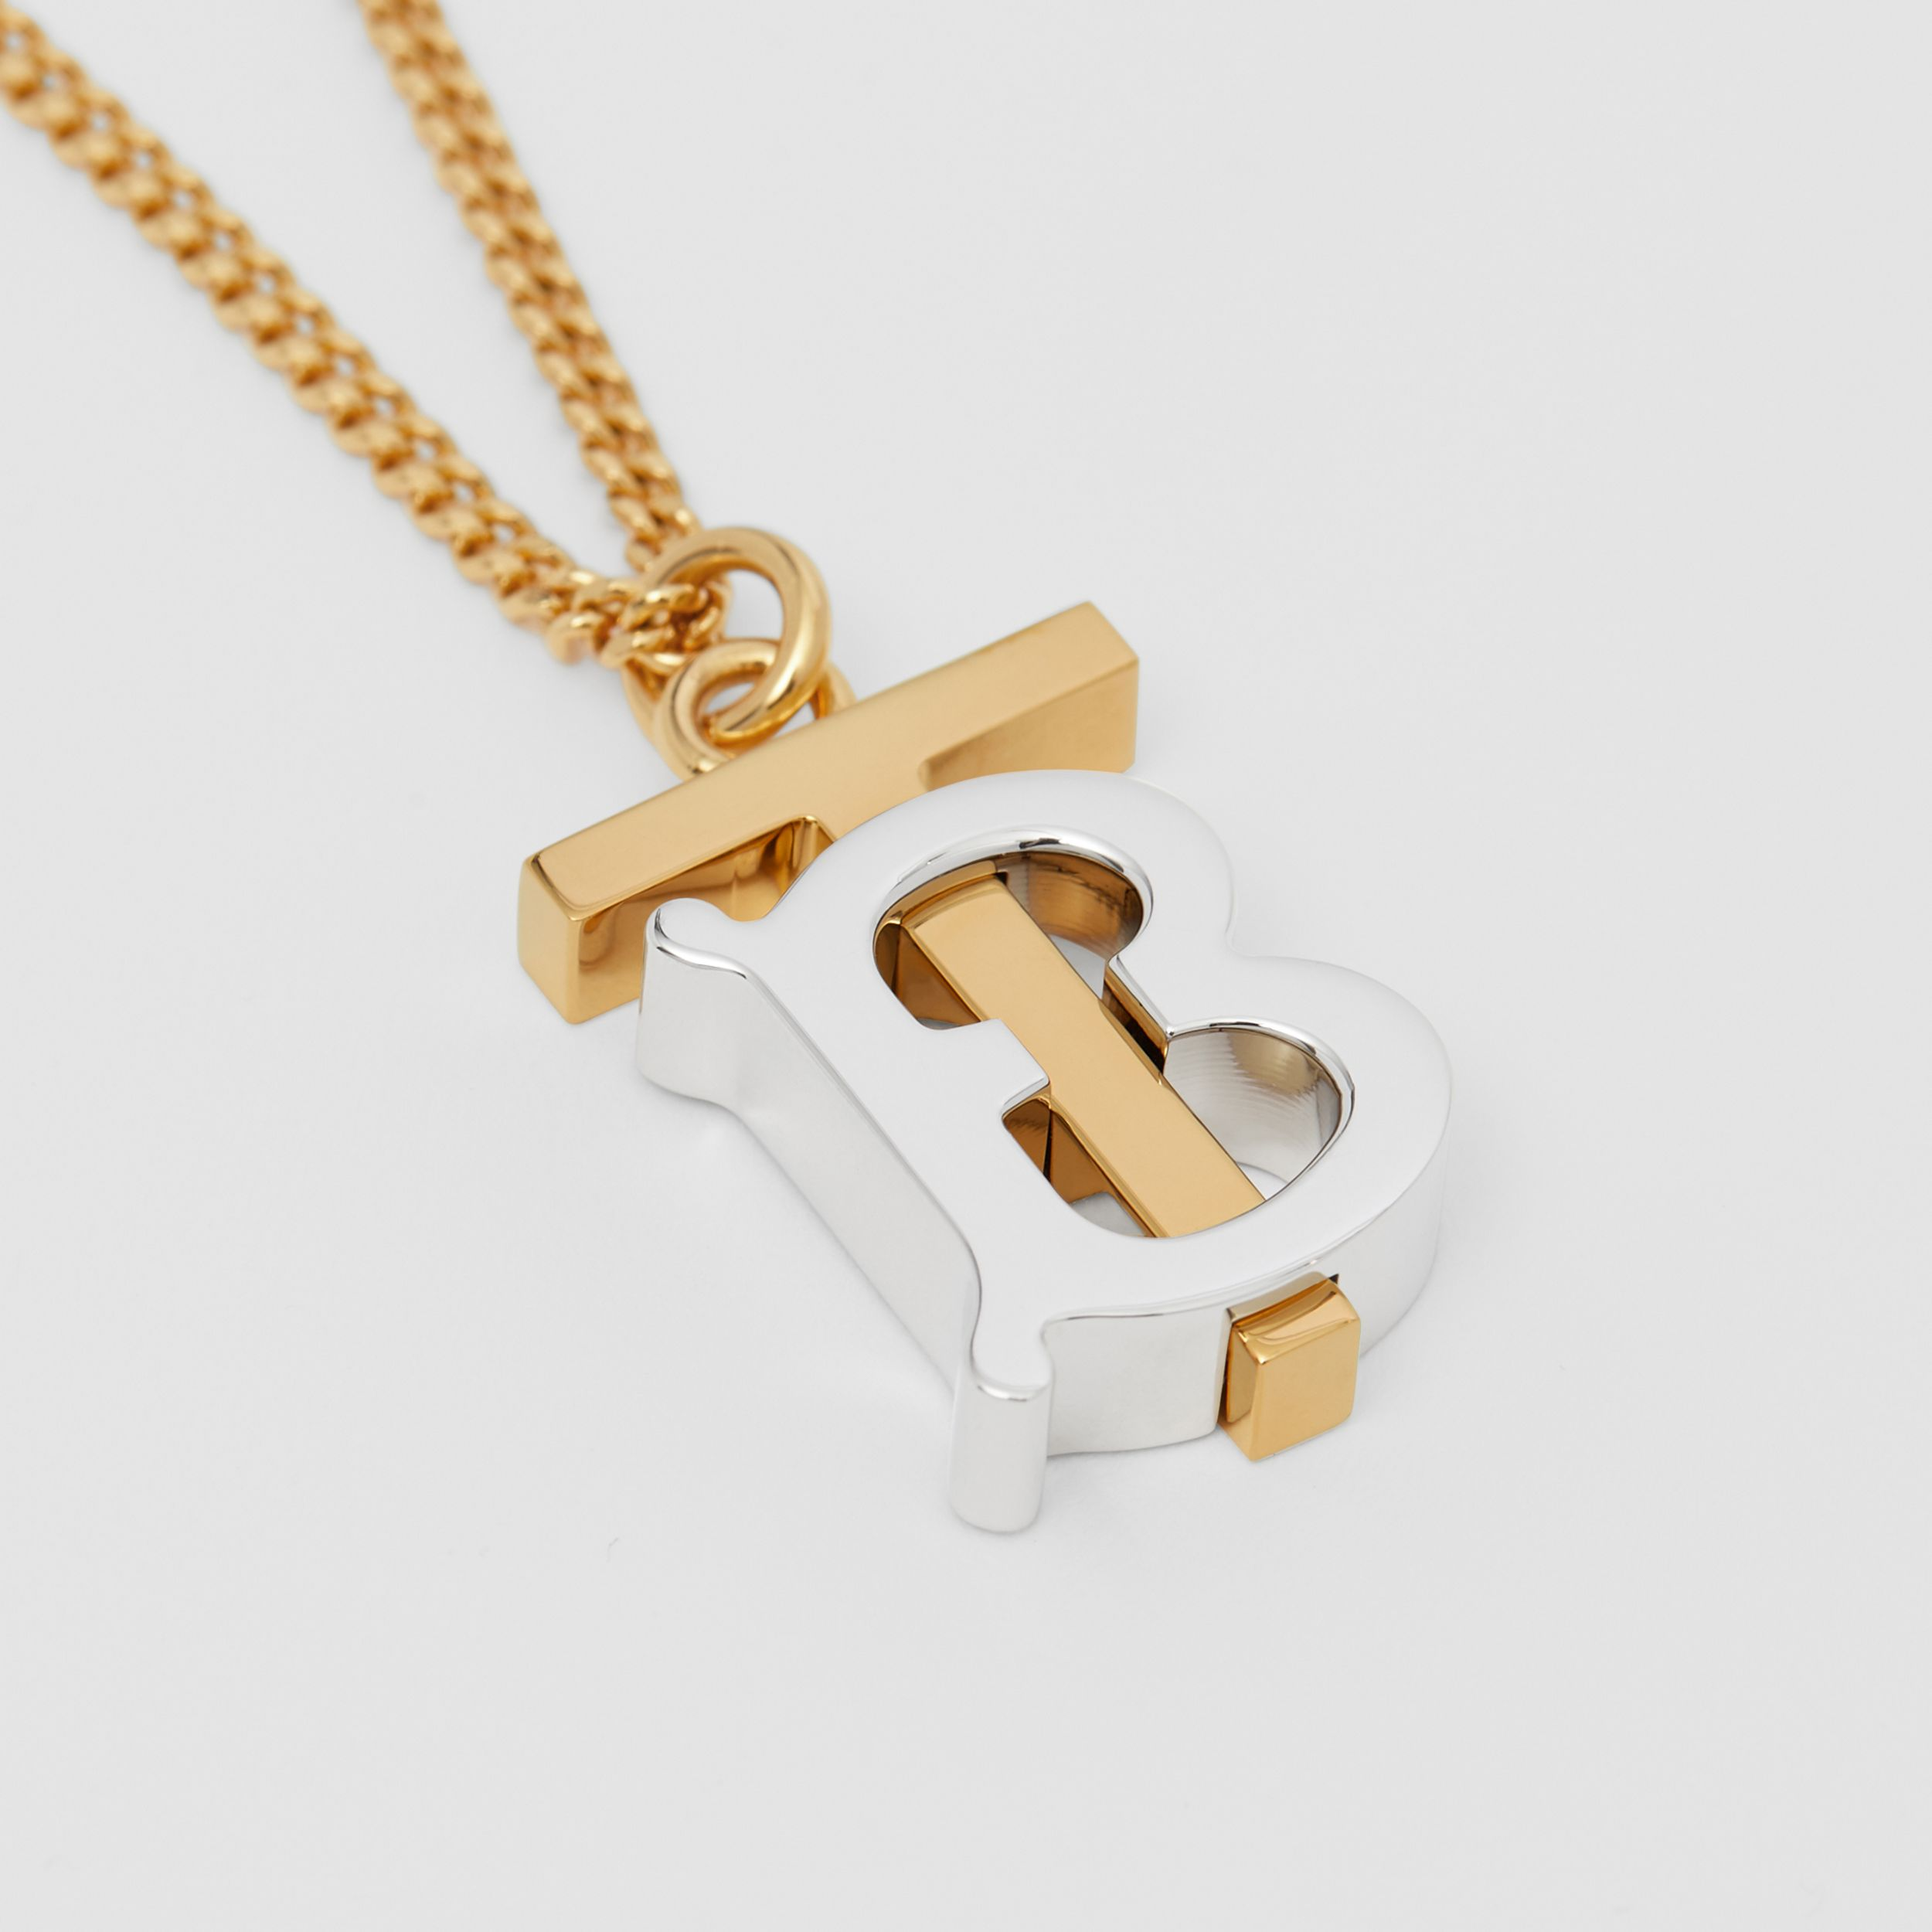 Collier plaqué or et palladium Monogram (Clair/palladium) - Femme | Burberry - 2